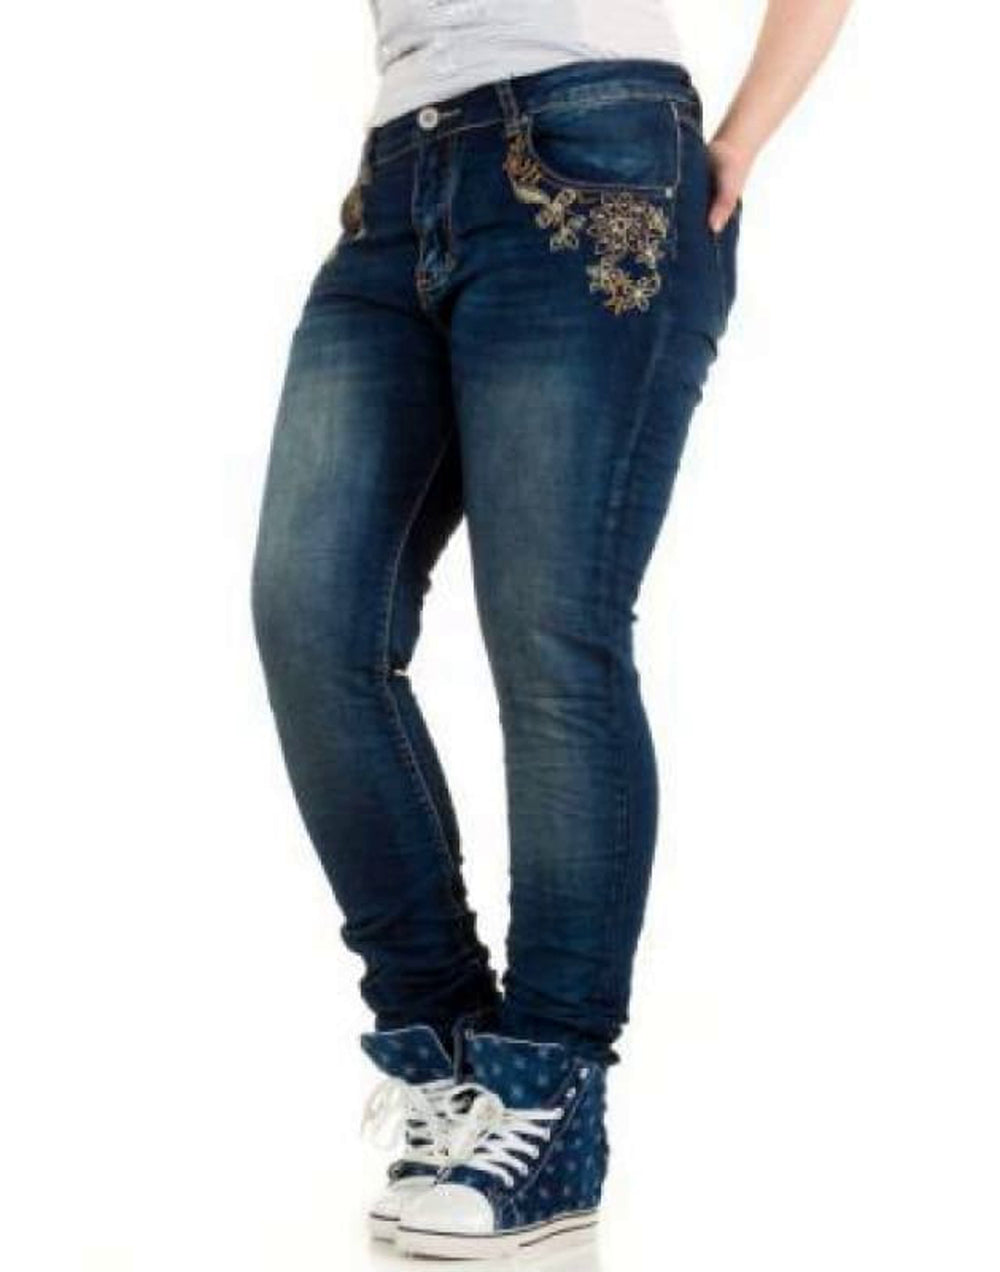 Floral Embroidered Mid washed Jeans - Plus Size Jeans & Jeggings blue denim trousers jeans plus size plus size clothing